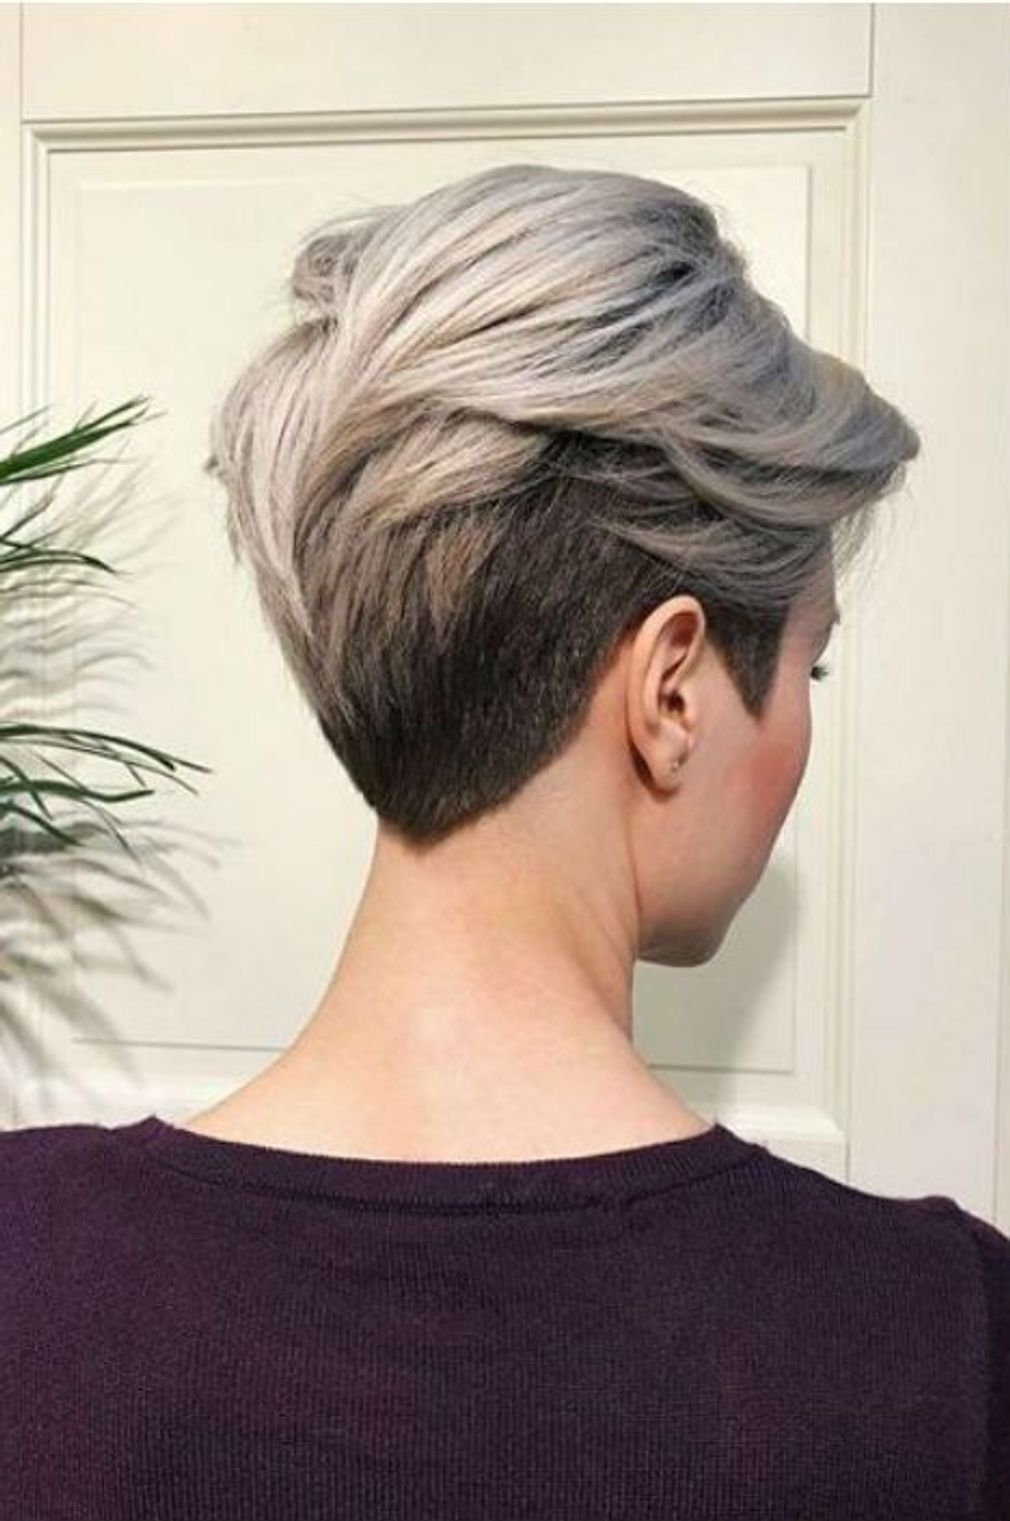 Coiffure Cheveux Courts Cheveux Courts Coupe De Cheveux Courte Coiffures Cheveux Courts